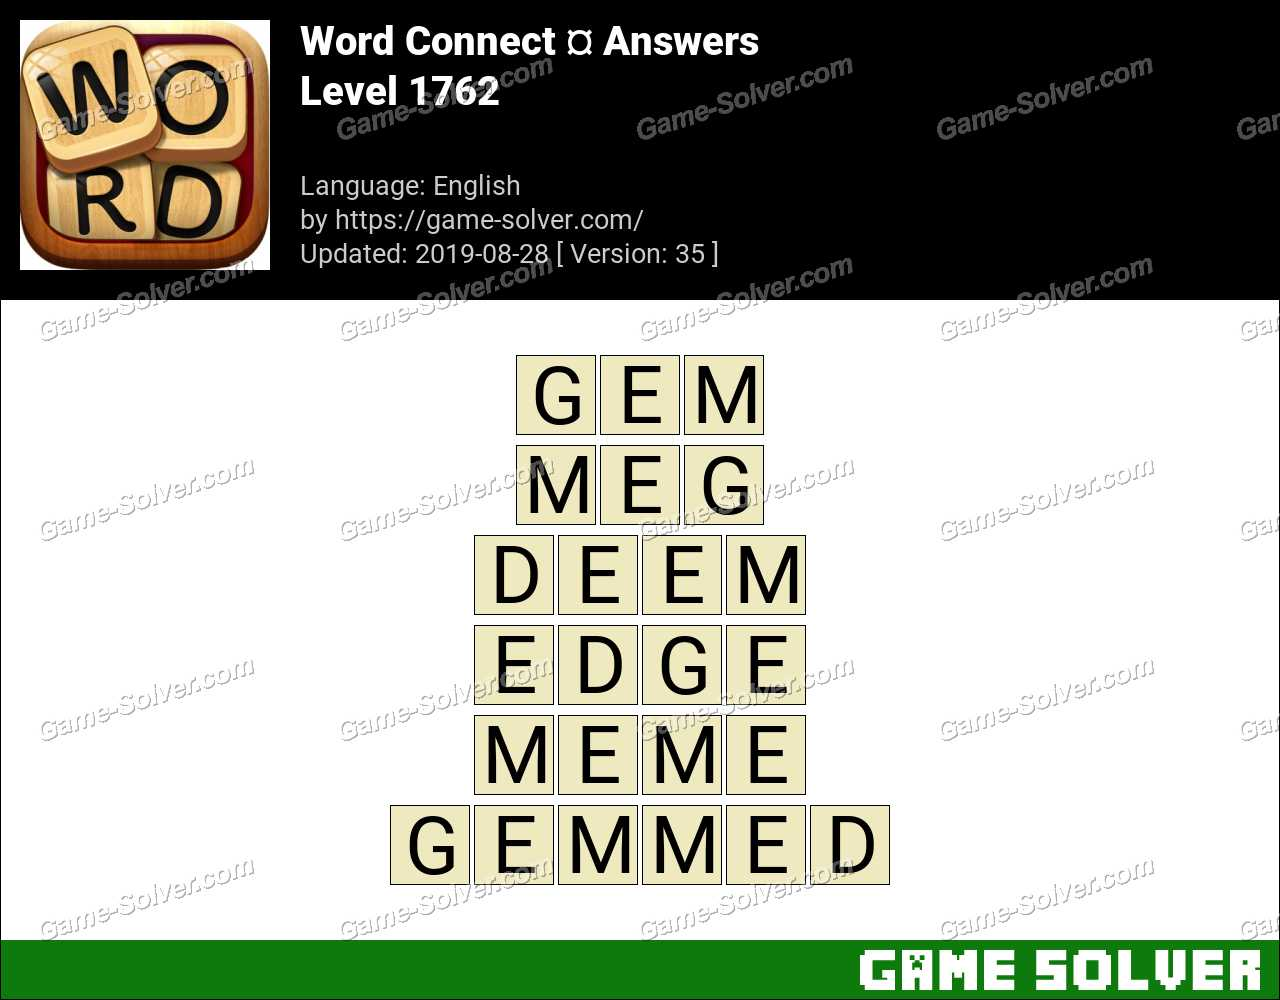 Word Connect Level 1762 Answers